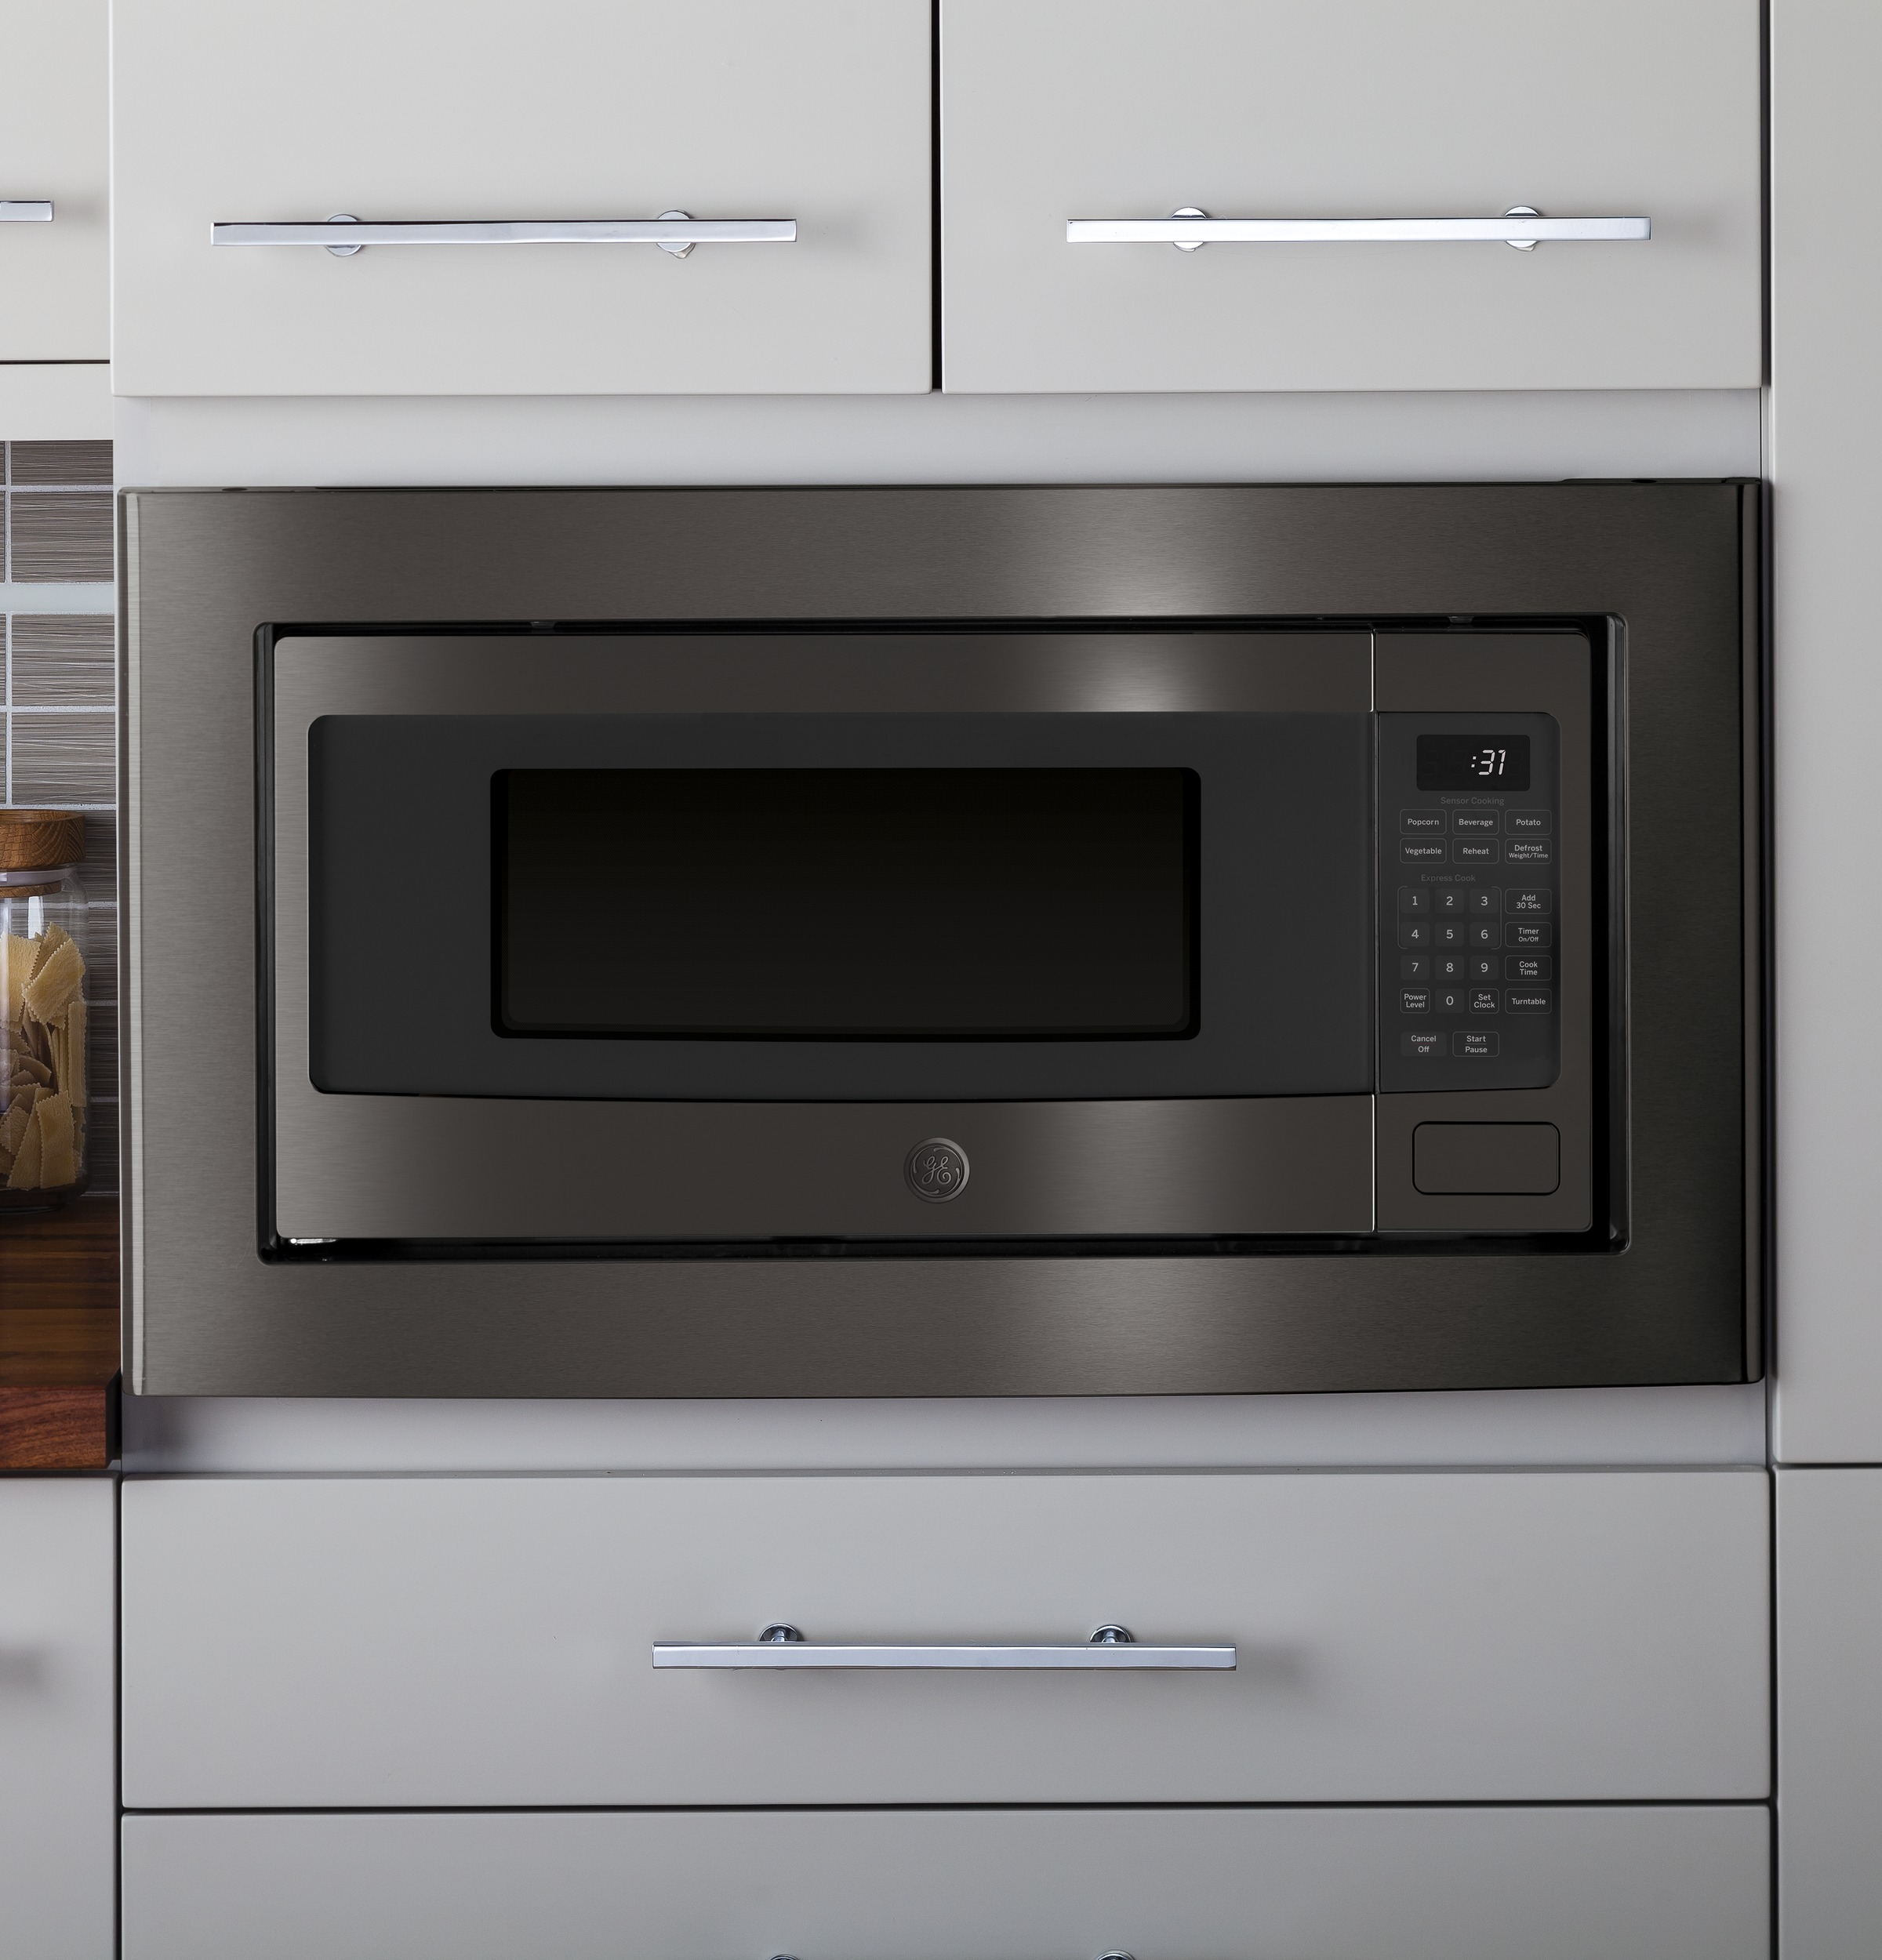 Model: PEM31BMTS | GE Profile™ Series 1.1 Cu. Ft. Countertop Microwave Oven